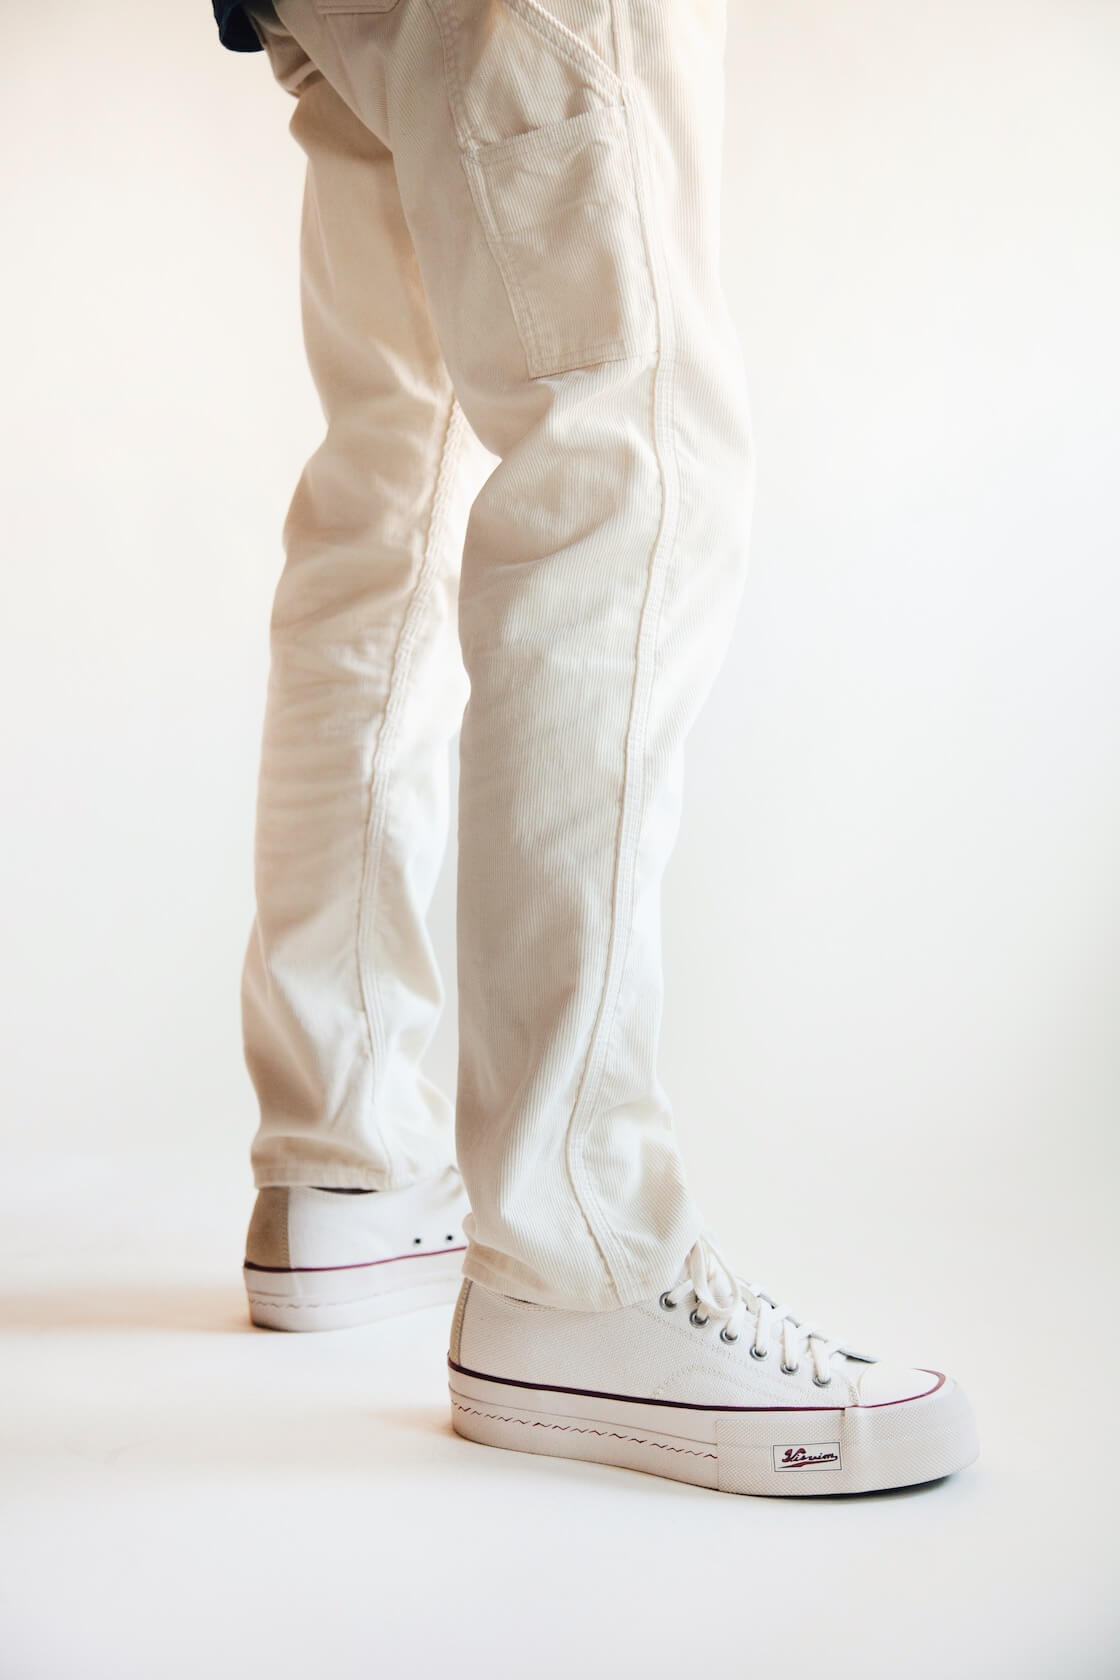 orslow painter pants, and visvim skagway lo canvas shoes on body